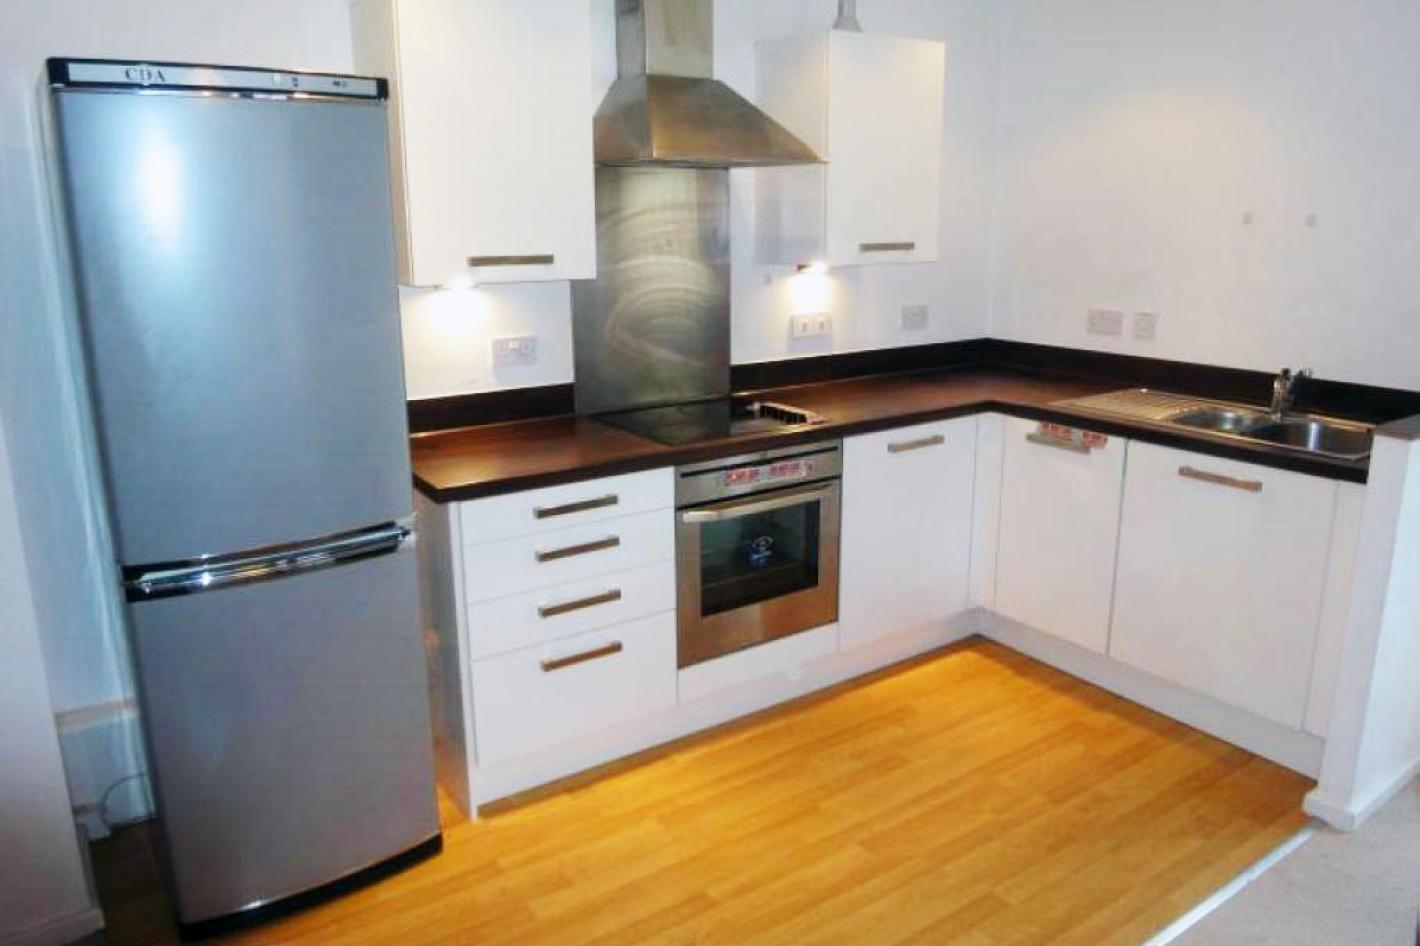 large kitchen with white cupboards, wooden floors and family size fridge